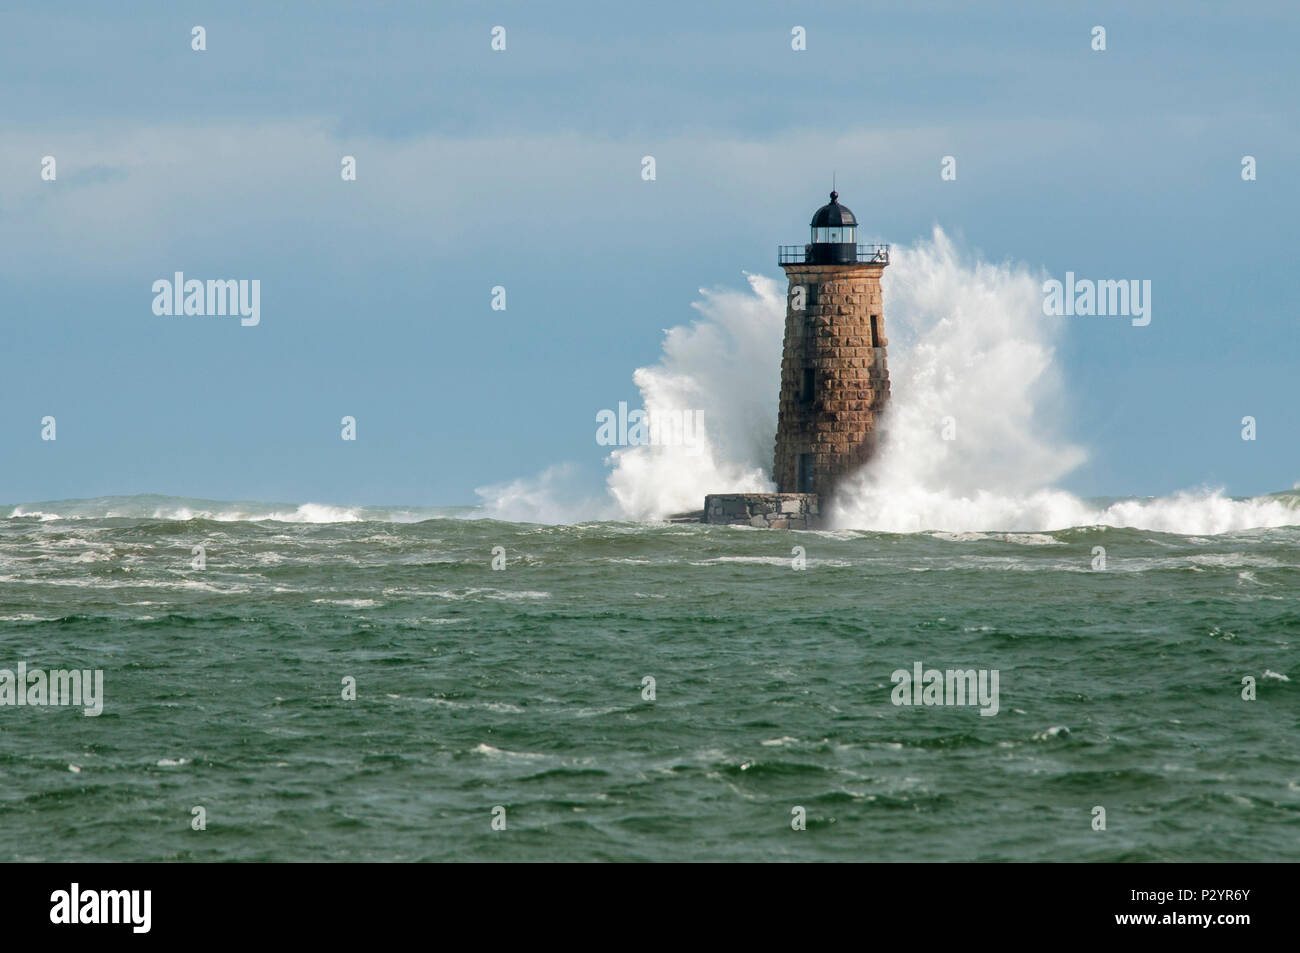 Giant waves cover the stone tower of Whaleback lighthouse in southern Maine during an astronomically high tide. - Stock Image